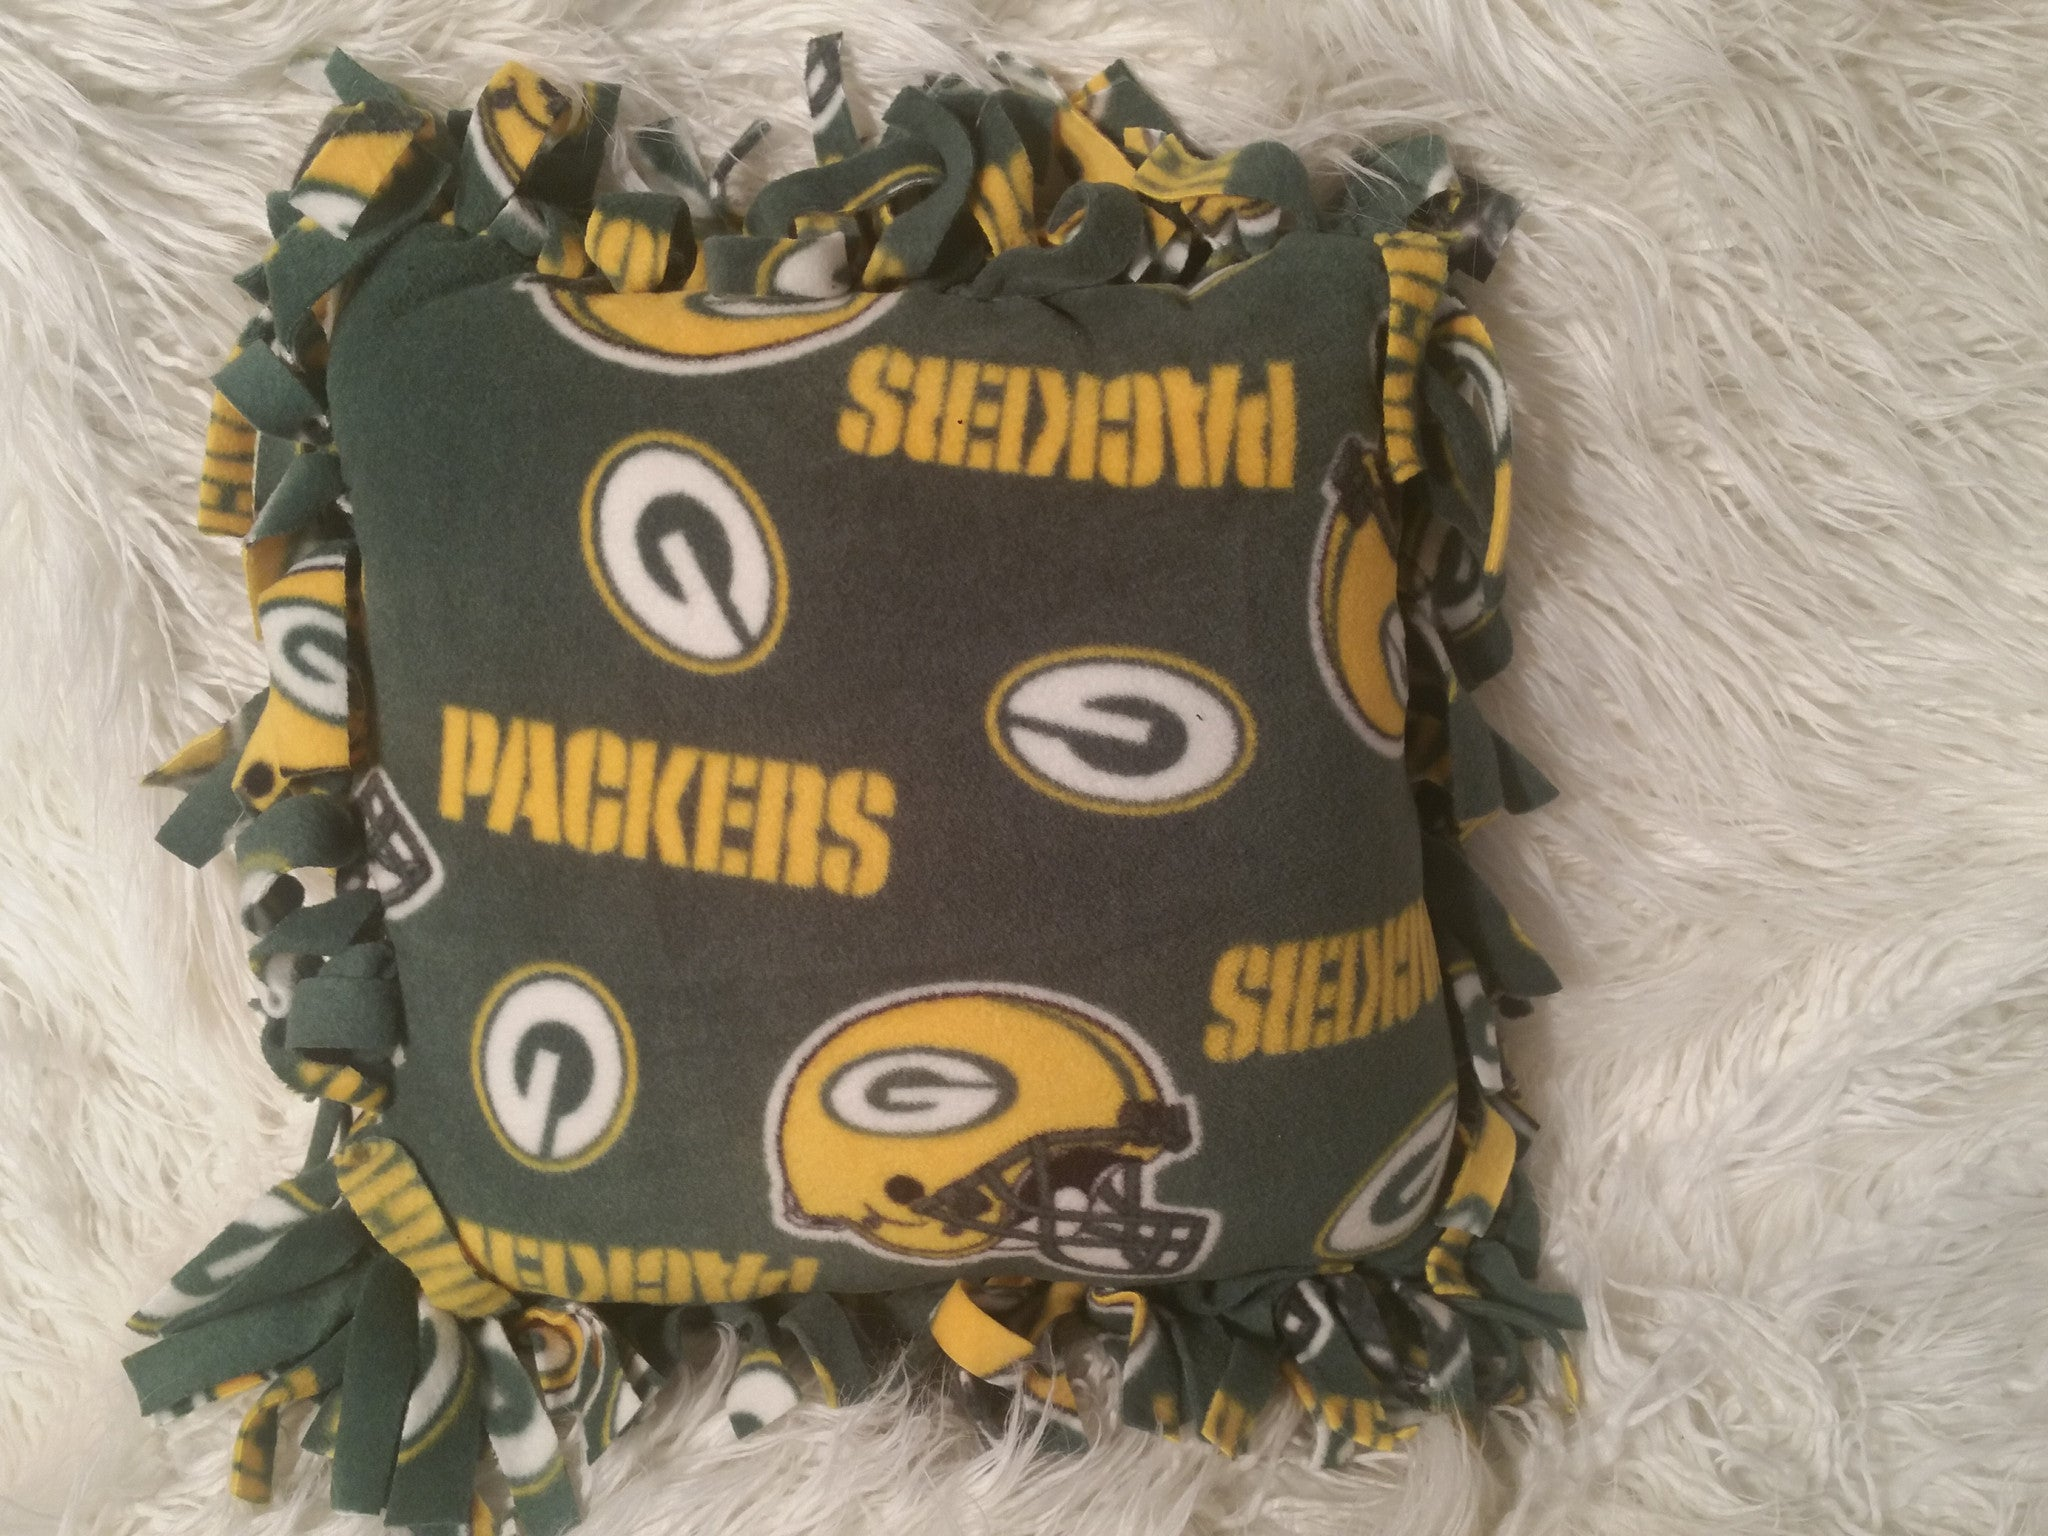 Handmade NFL Fleece Pillows with Fringe - IBL Fashion - 10